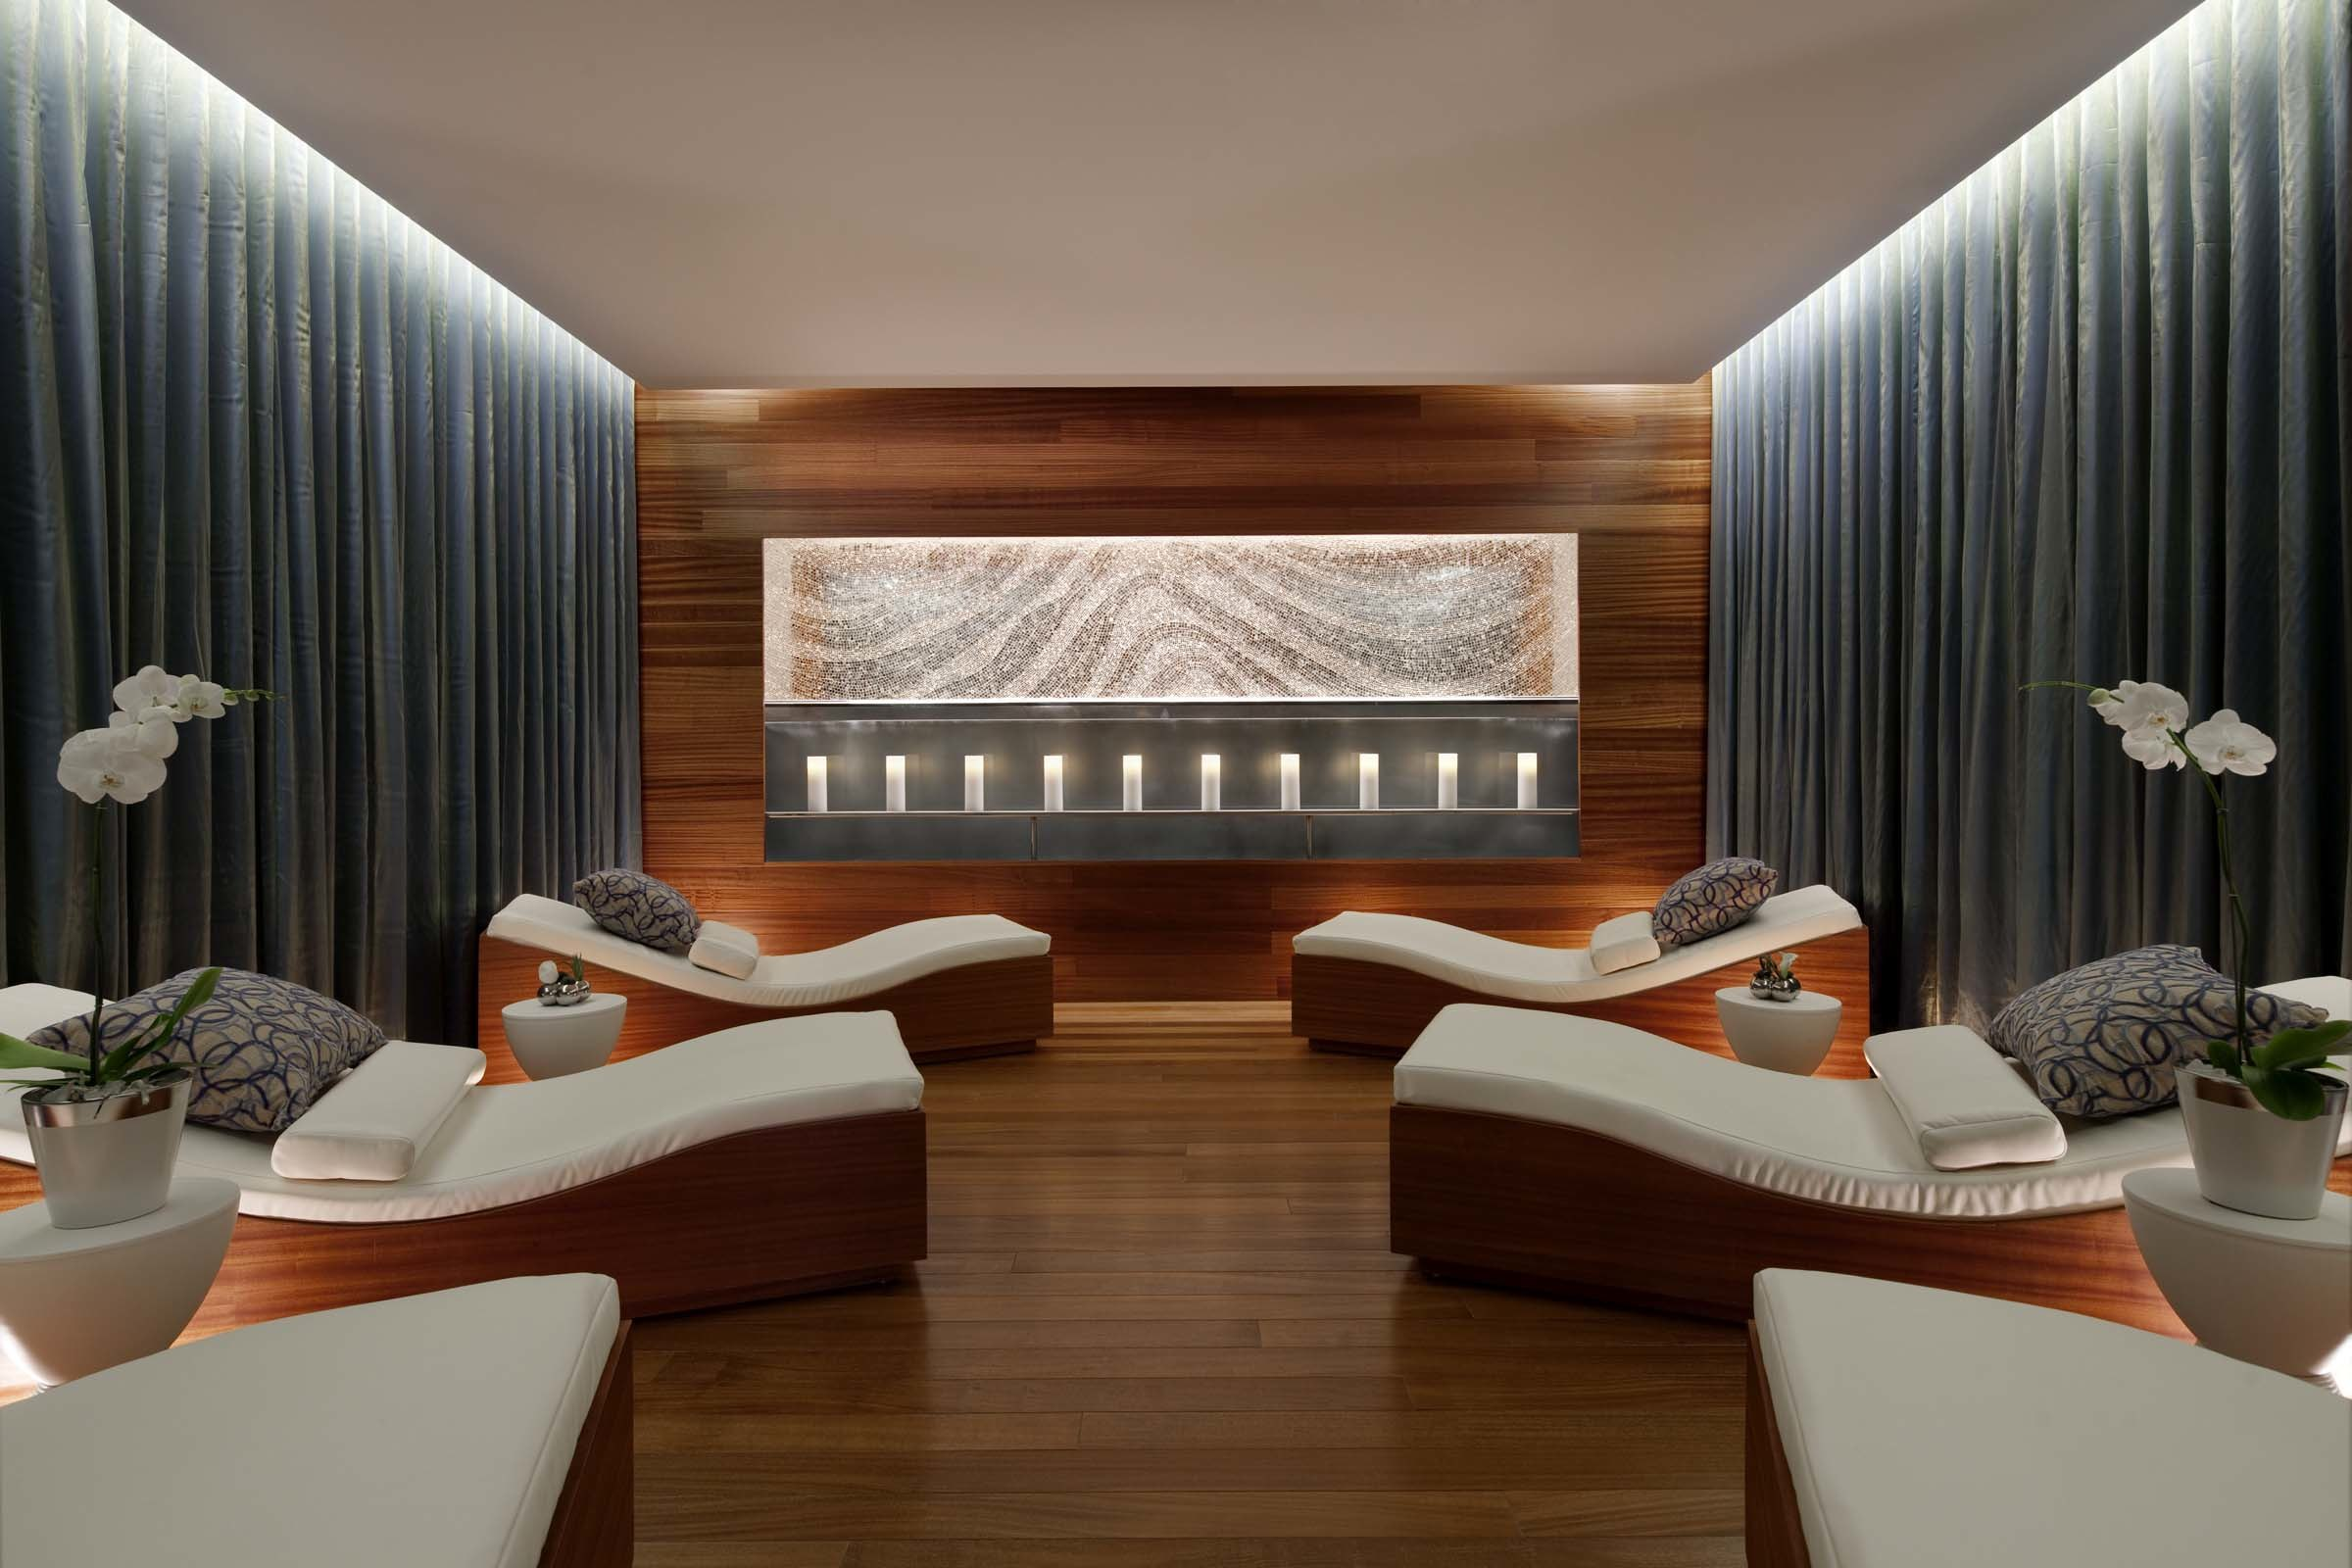 Vdara hotel spa receives first four star award by forbes for 4 star salon services